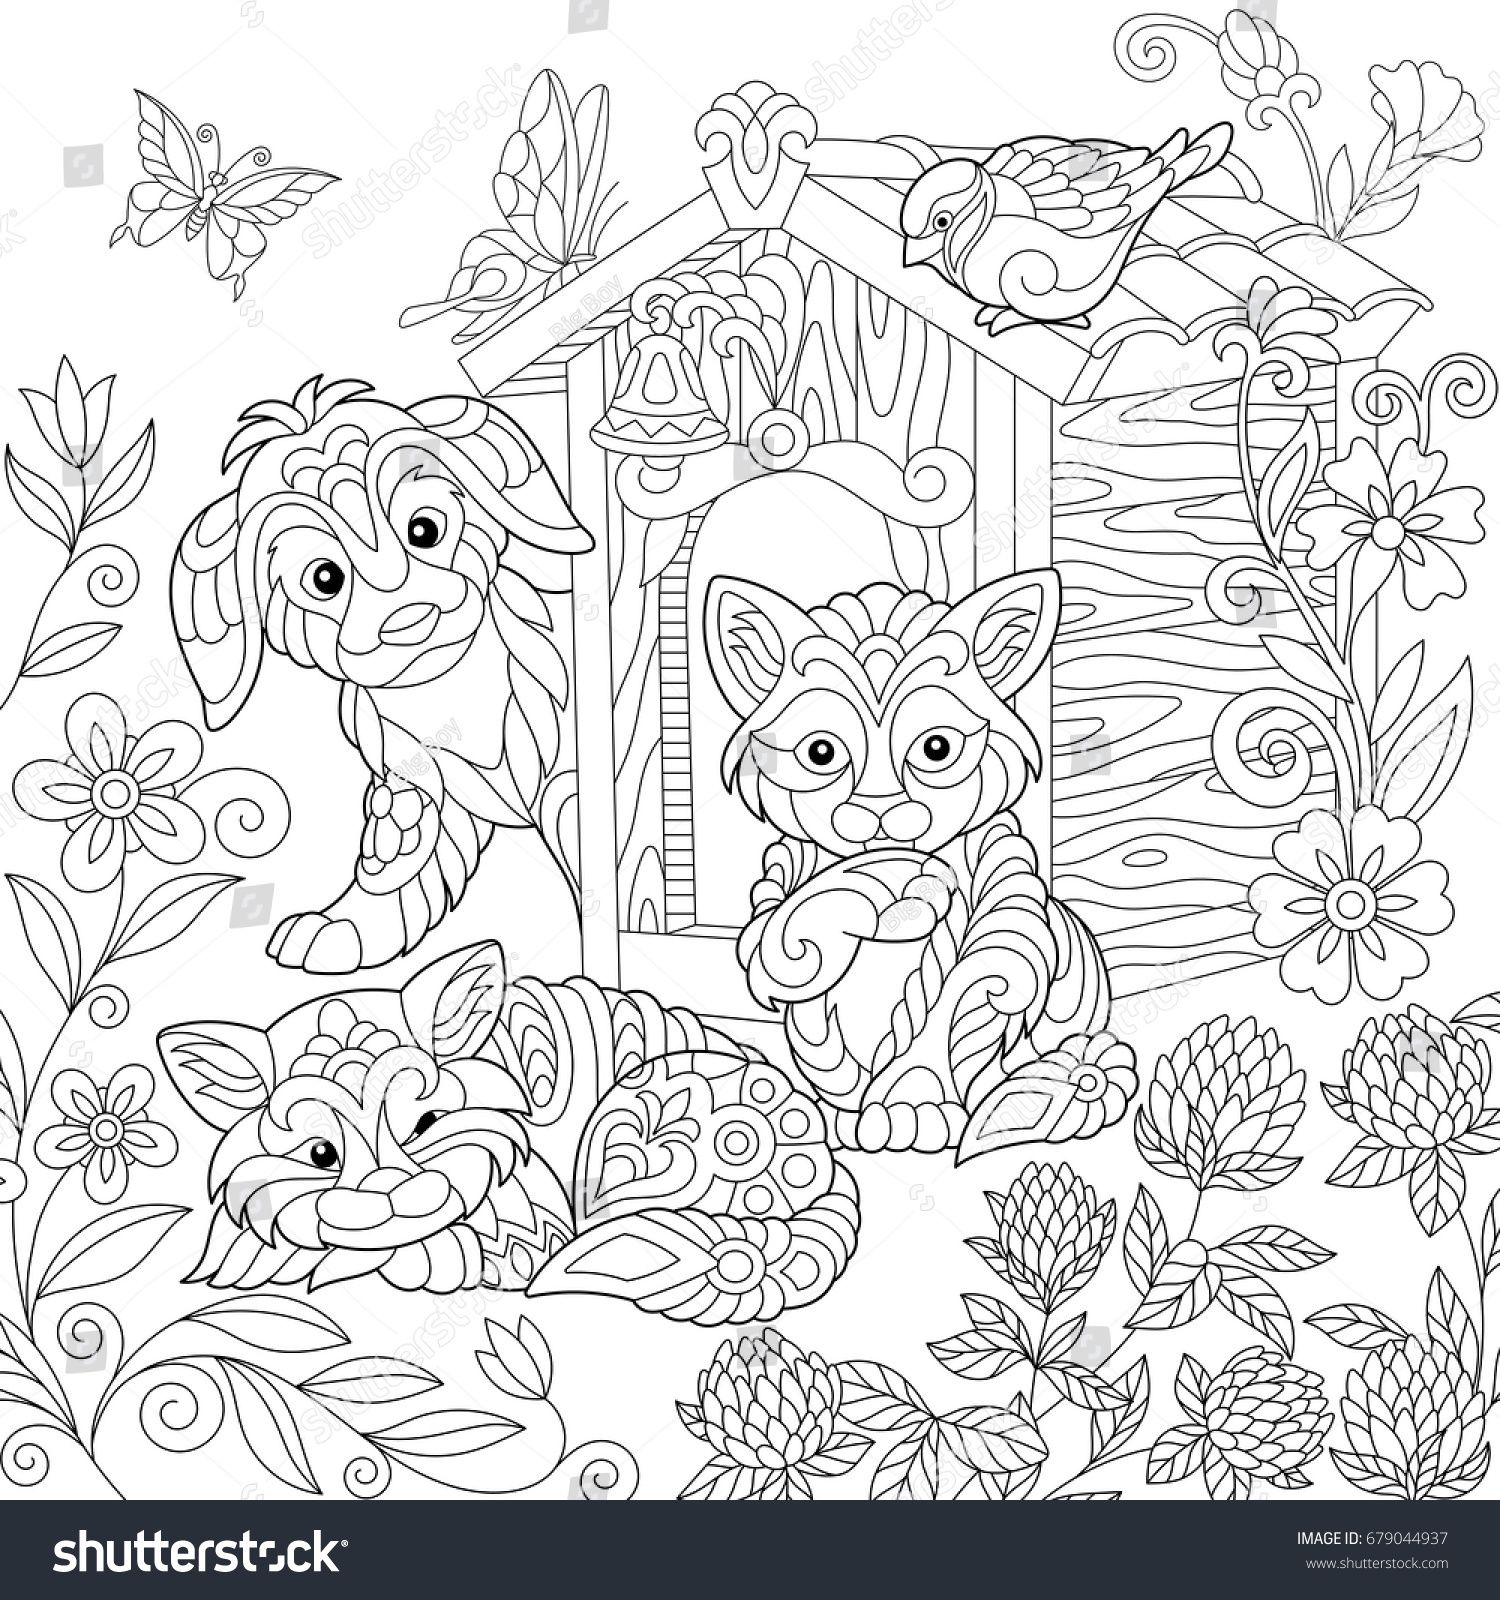 coloring page of puppy cat sparrow bird booth